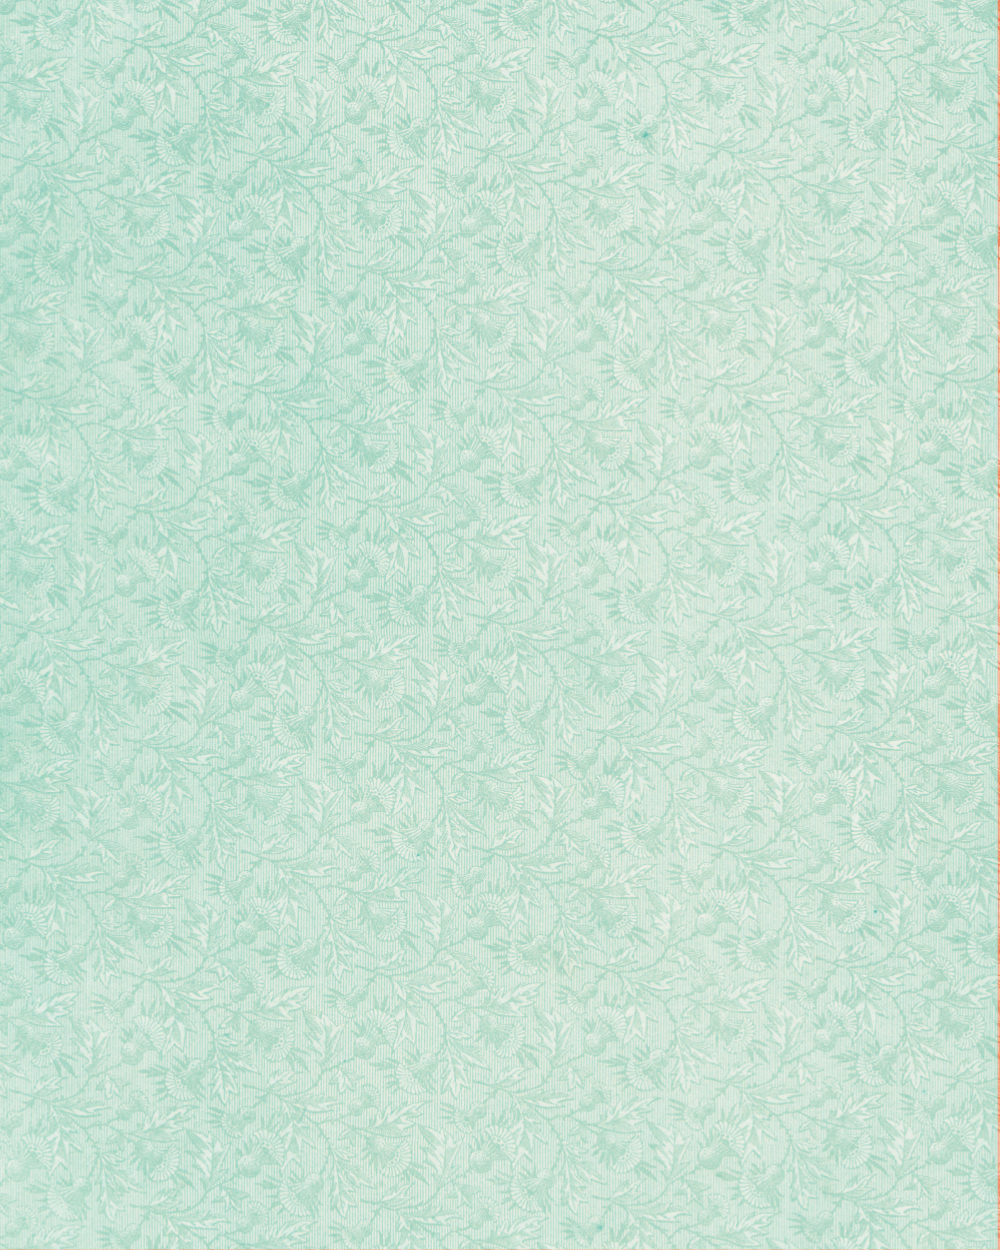 Floral Paper Light Blue